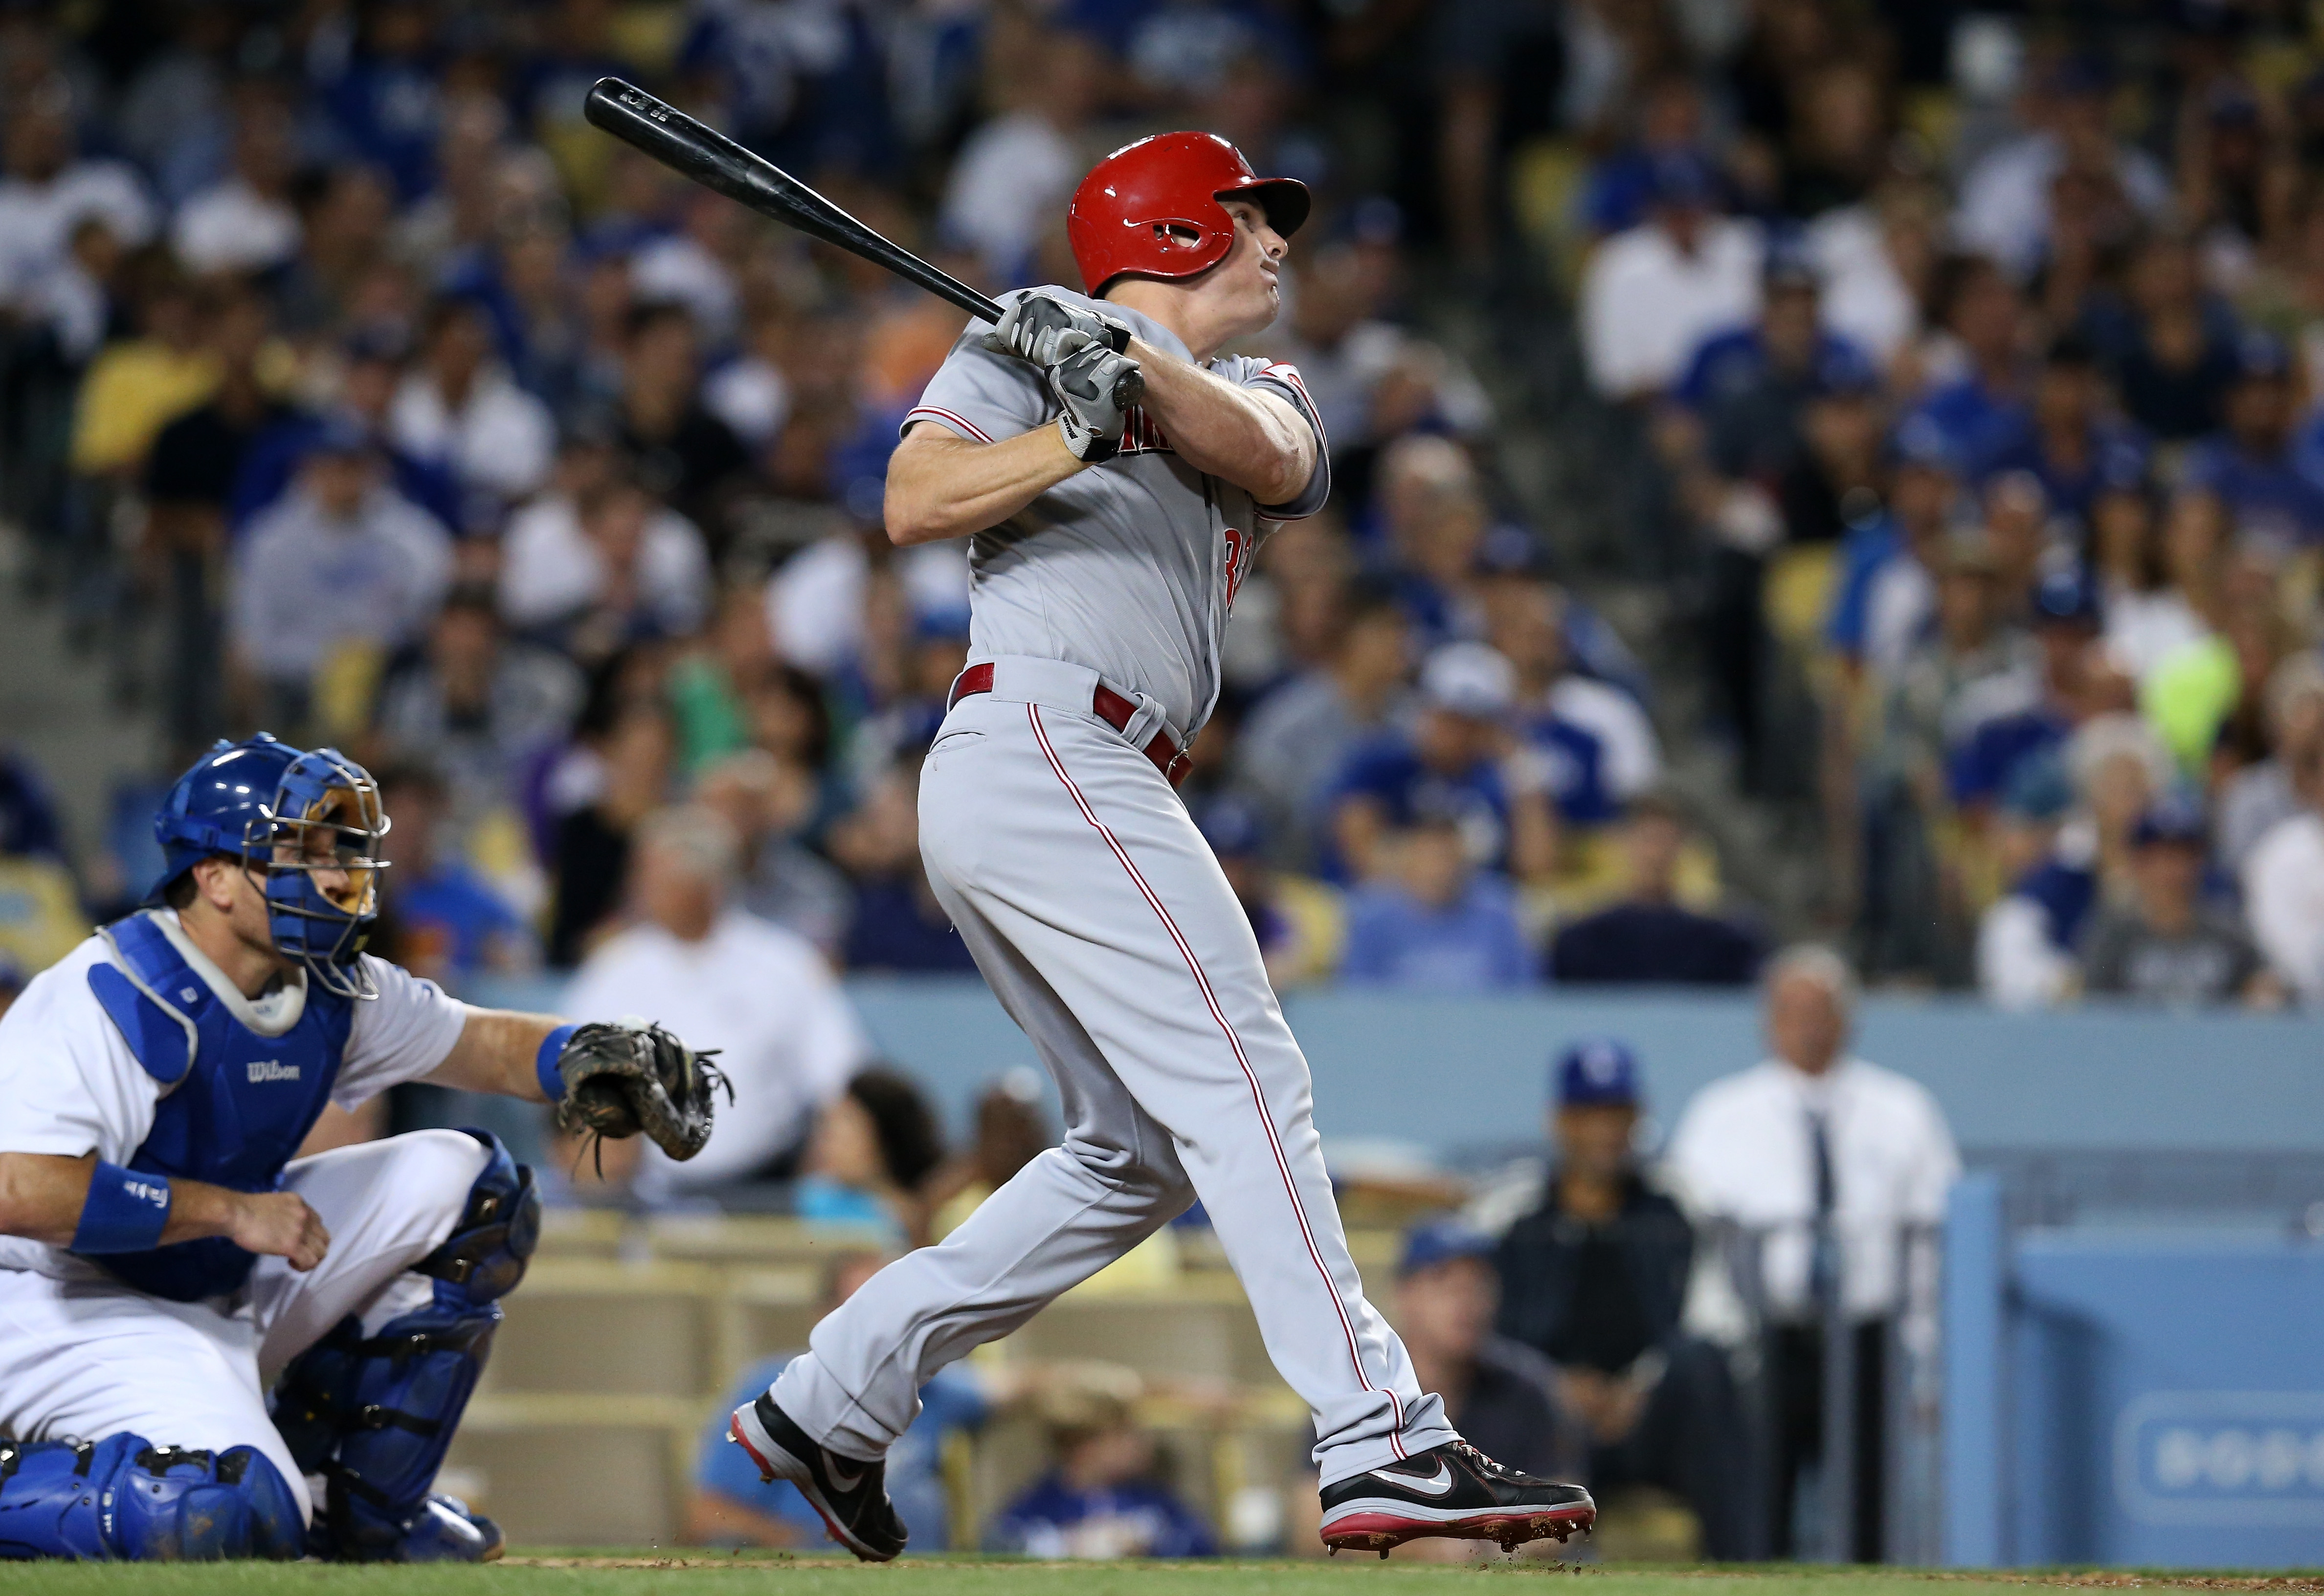 Jay Bruce has $13.5 million guaranteed remaining on his contract and has produced a total negative WAR the last two years.